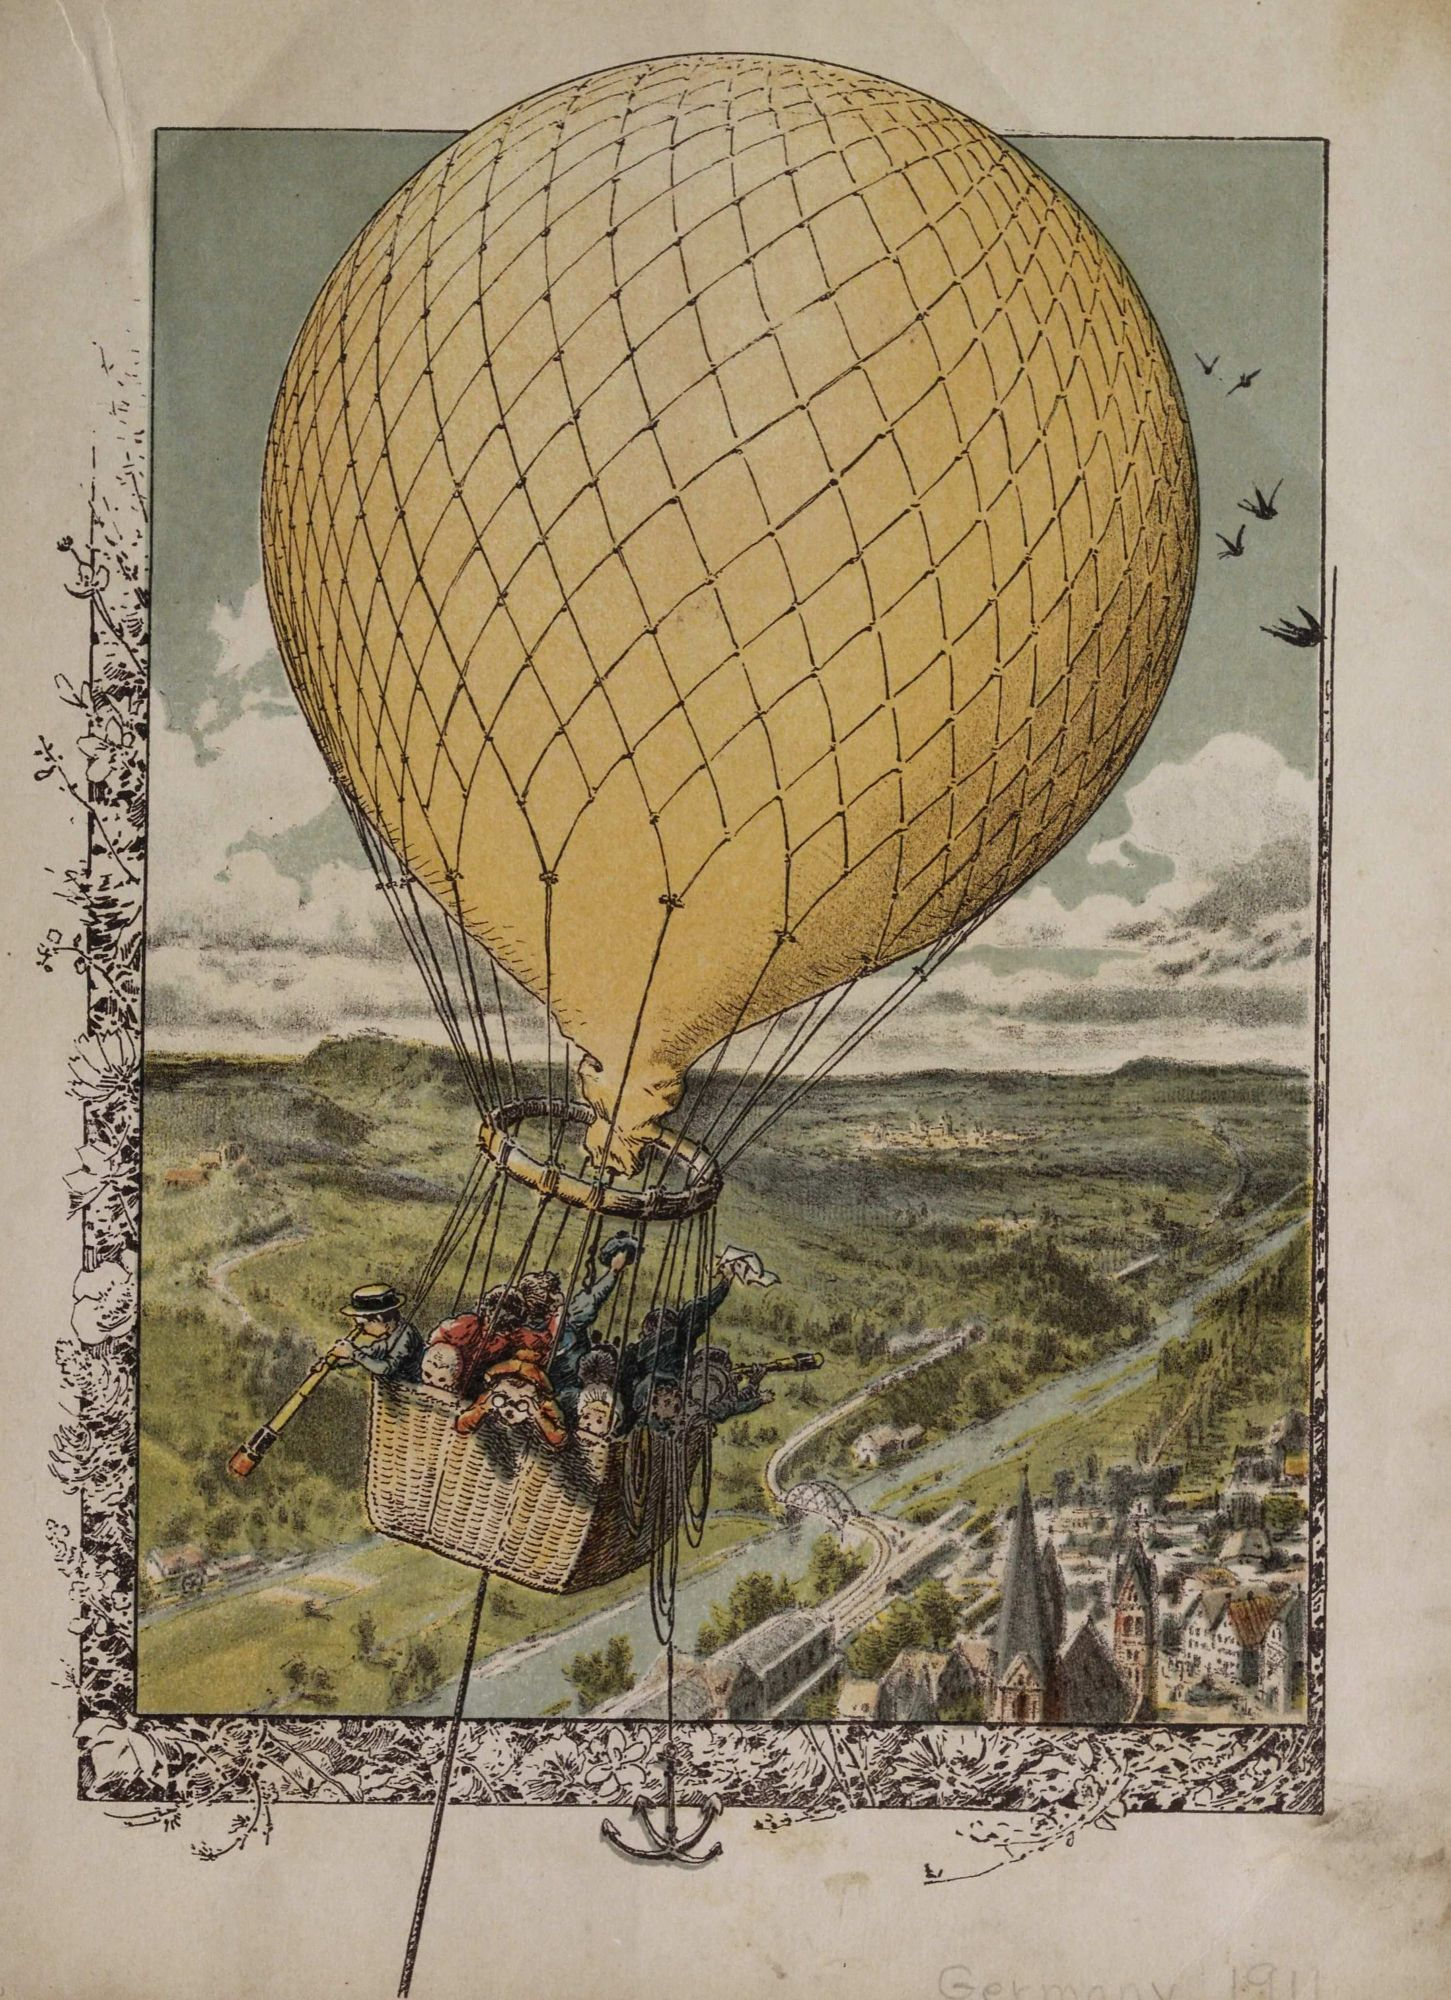 Untitled. Small crowd of children up in a gas balloon